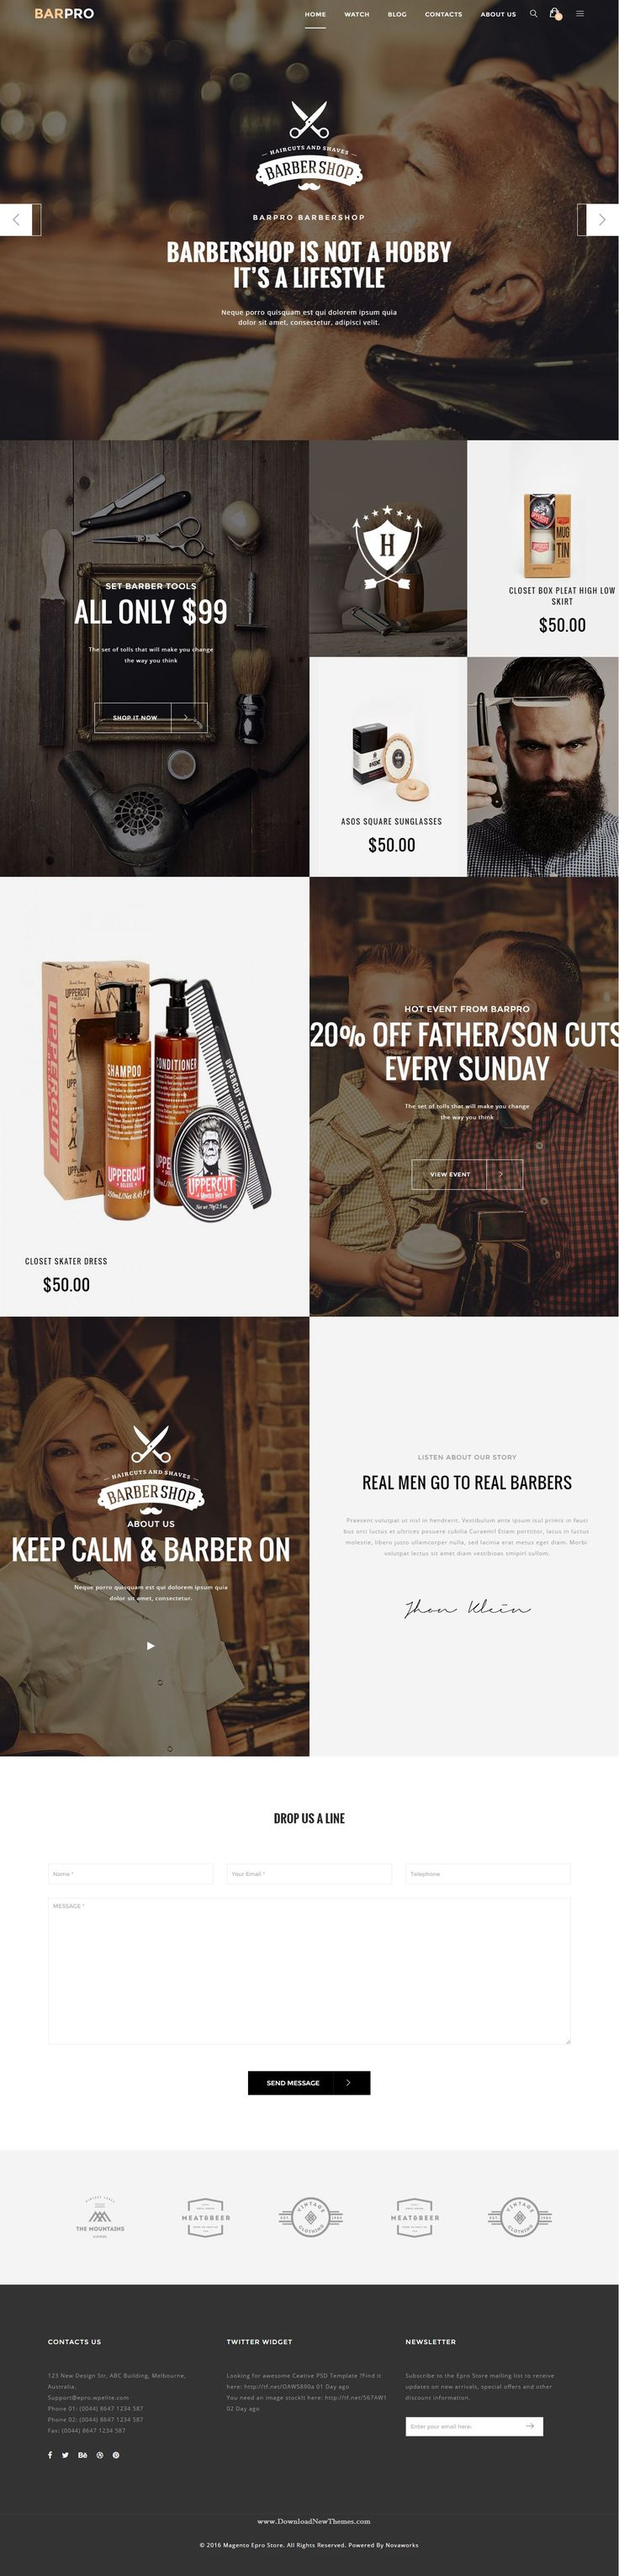 Epro - Premium Responsive Magento Theme. It has 8 stunning demos, 5 product layouts with creative design perfect for viral online store website. Demo #barber #hairstyle #barbershop